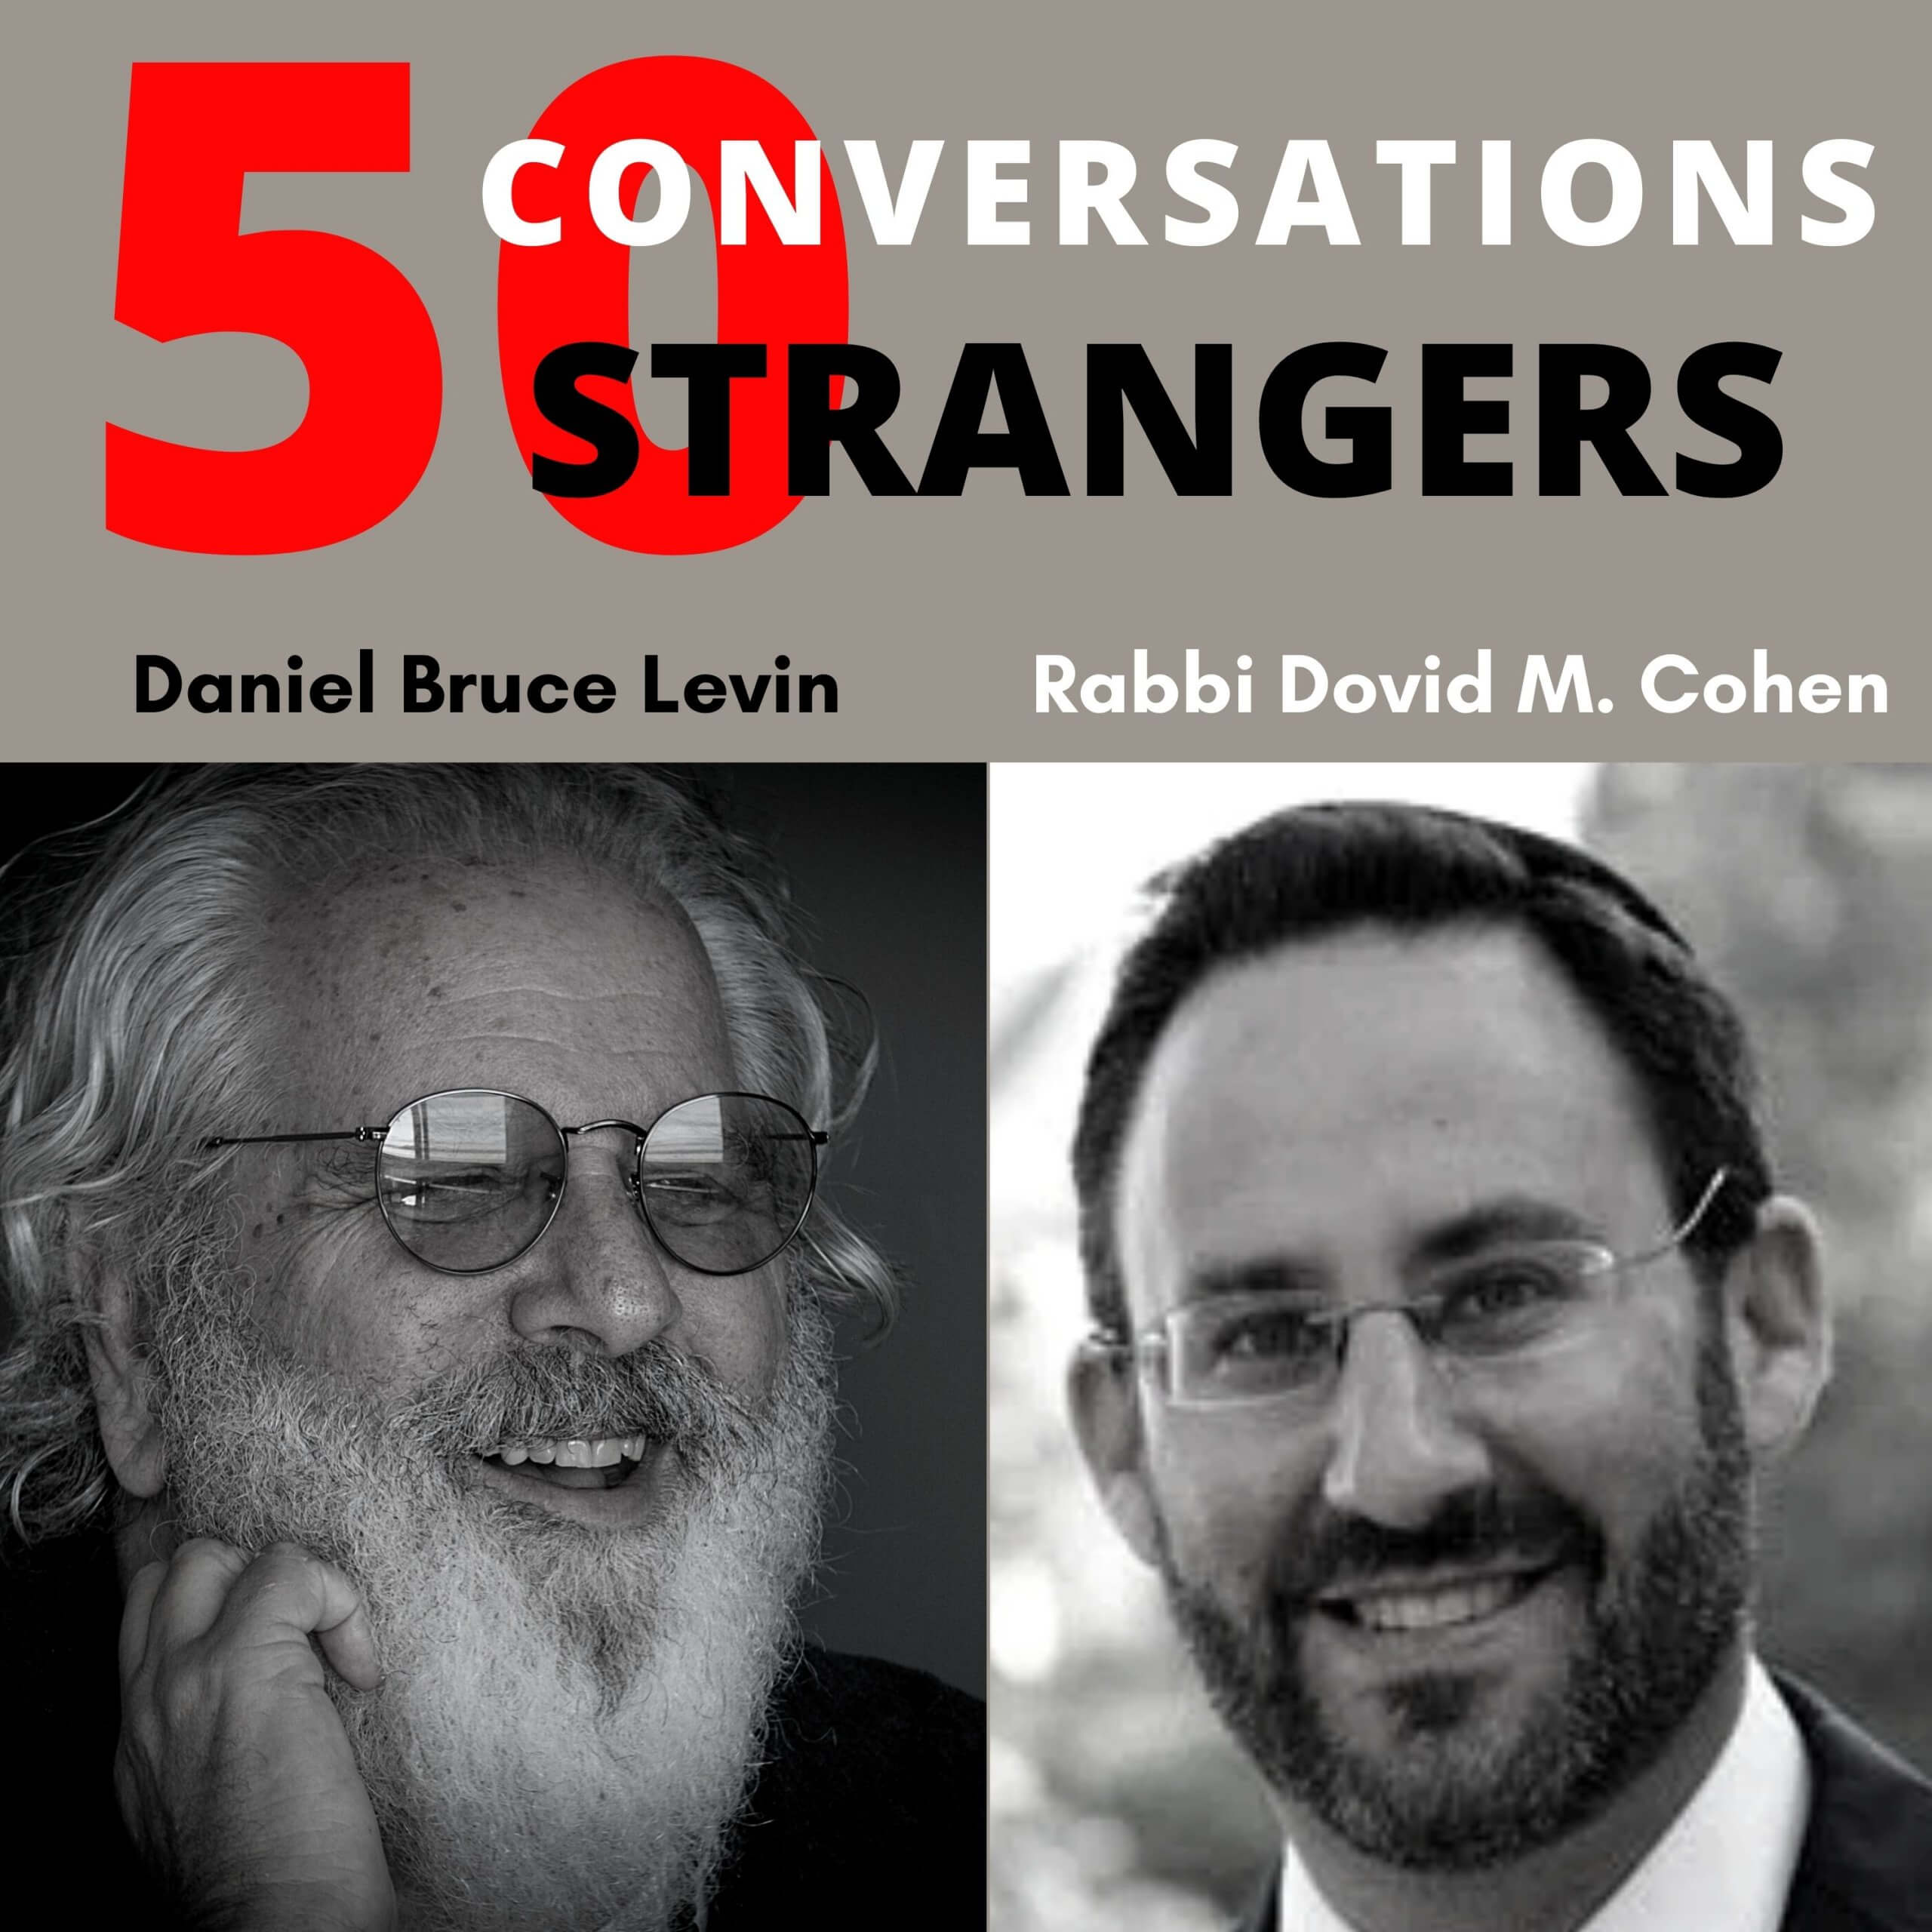 50 Conversations with 50 Strangers with Rabbi Dovid M. Cohen